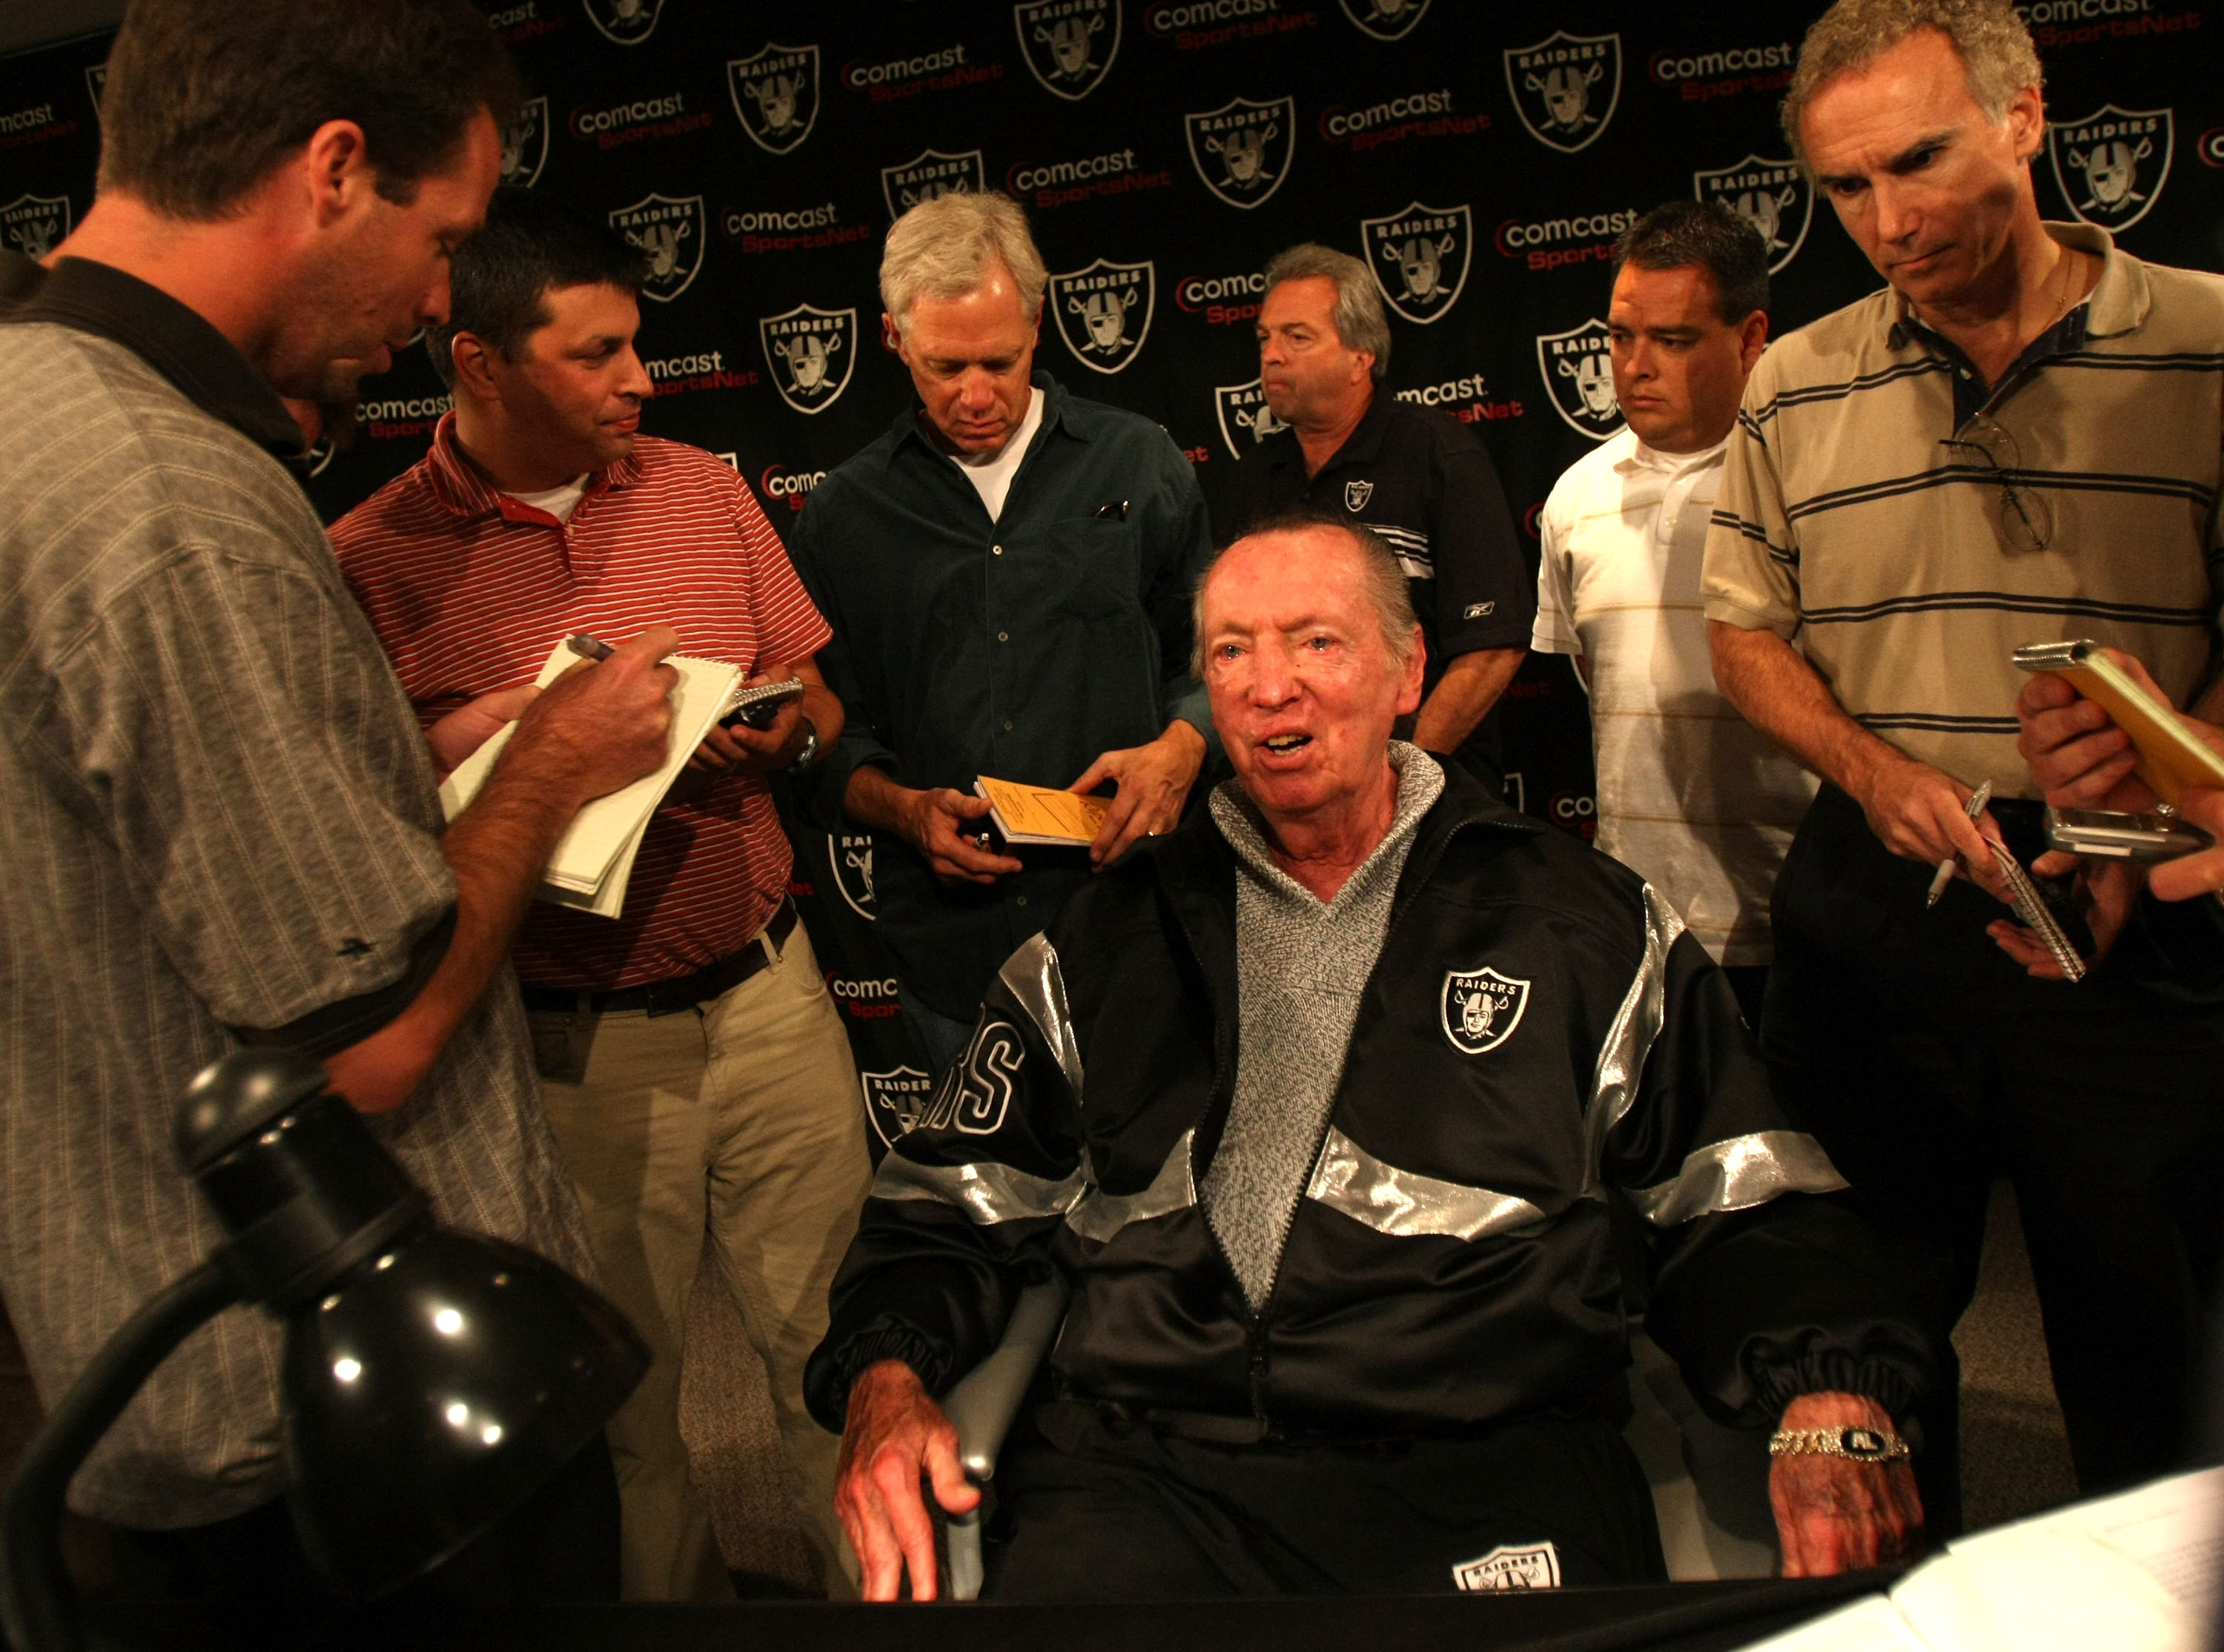 ALAMEDA, CA - SEPTEMBER 30:  Oakland Raiders owner Al Davis speaks during a press conference to announce the firing of head coach Lane Kiffin of the Oakland Raiders at thier training facility on Septemer 30, 2008 in Alameda, California.  (Photo by Jed Jac